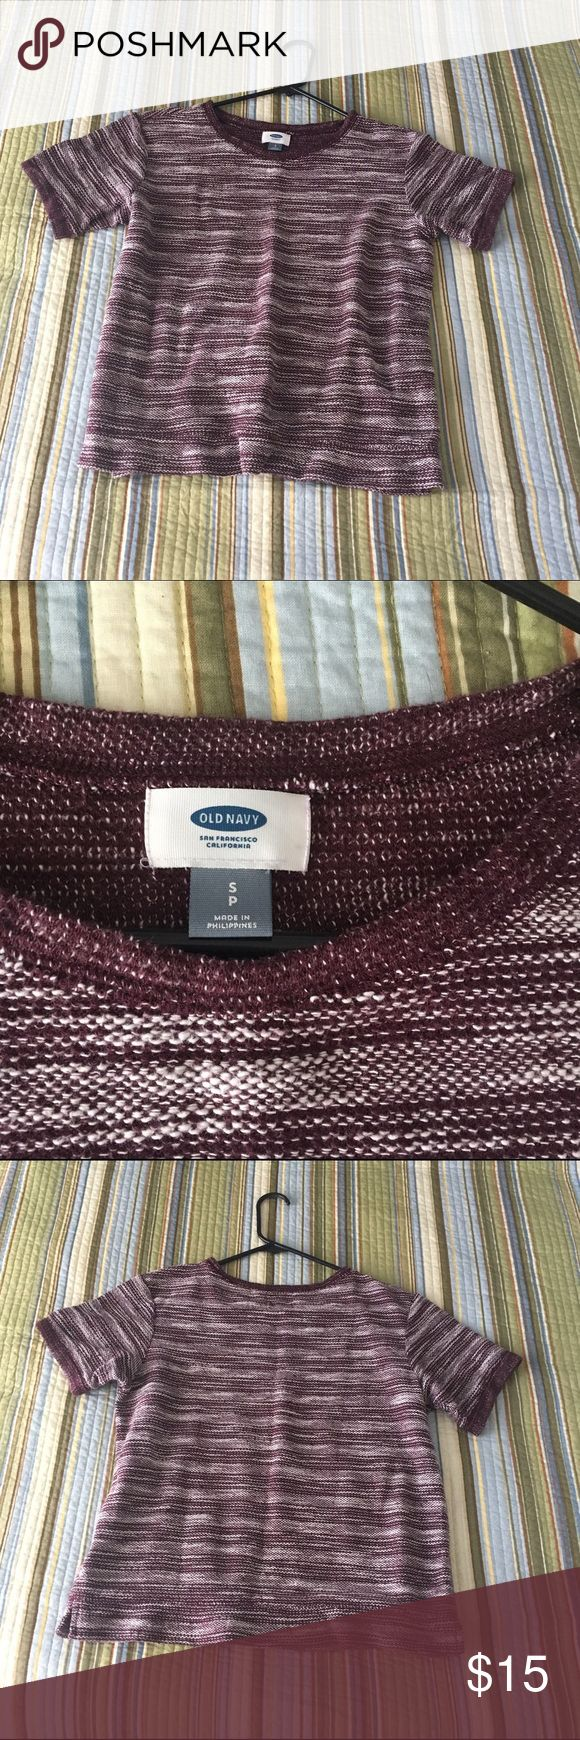 Cute & Cozy Old Navy Short Sleeve Sweater Fashionable berry color | Slouchy fit | Perfect for transition from Fall to Winter | Size S | No piling Old Navy Tops Tees - Short Sleeve